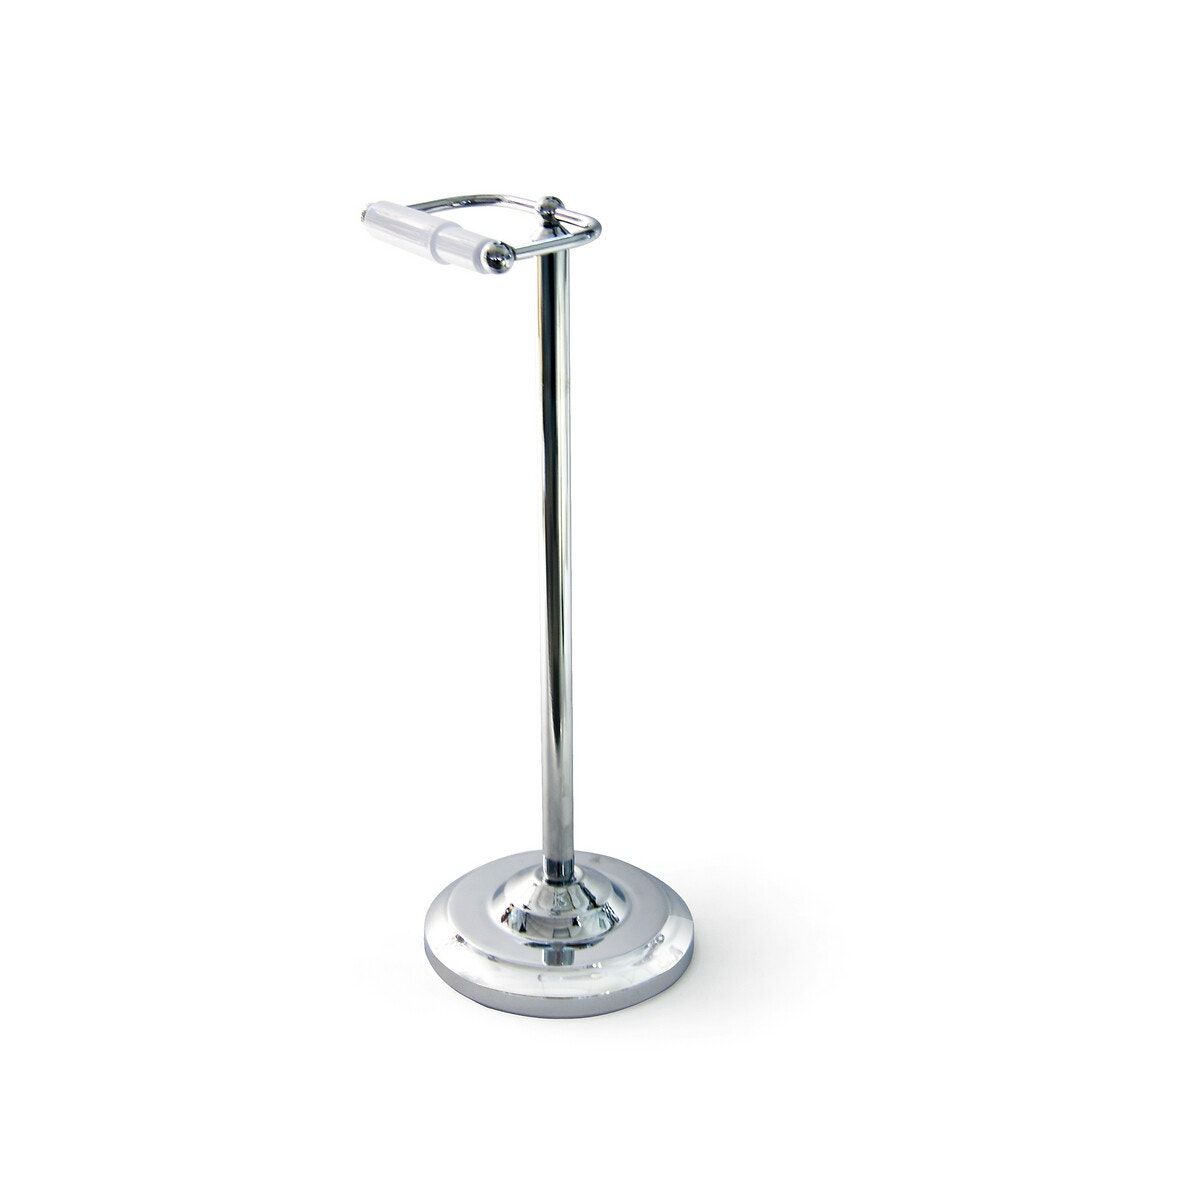 This product will be dispatched by one of our trusted suppliers. You'll be contacted by their selected courier about your delivery.keep your bathroom organised with an extensive range of bathroom accessories by sabichi. This chrome plated toilet roll stand is sure to add a touch of style to your bathroom. Better bathroom storage ideas from our sabichi homemakers.product details:toilet roll holderround basefree standingchrome platedheight: 53cmbase diameter: 19cm